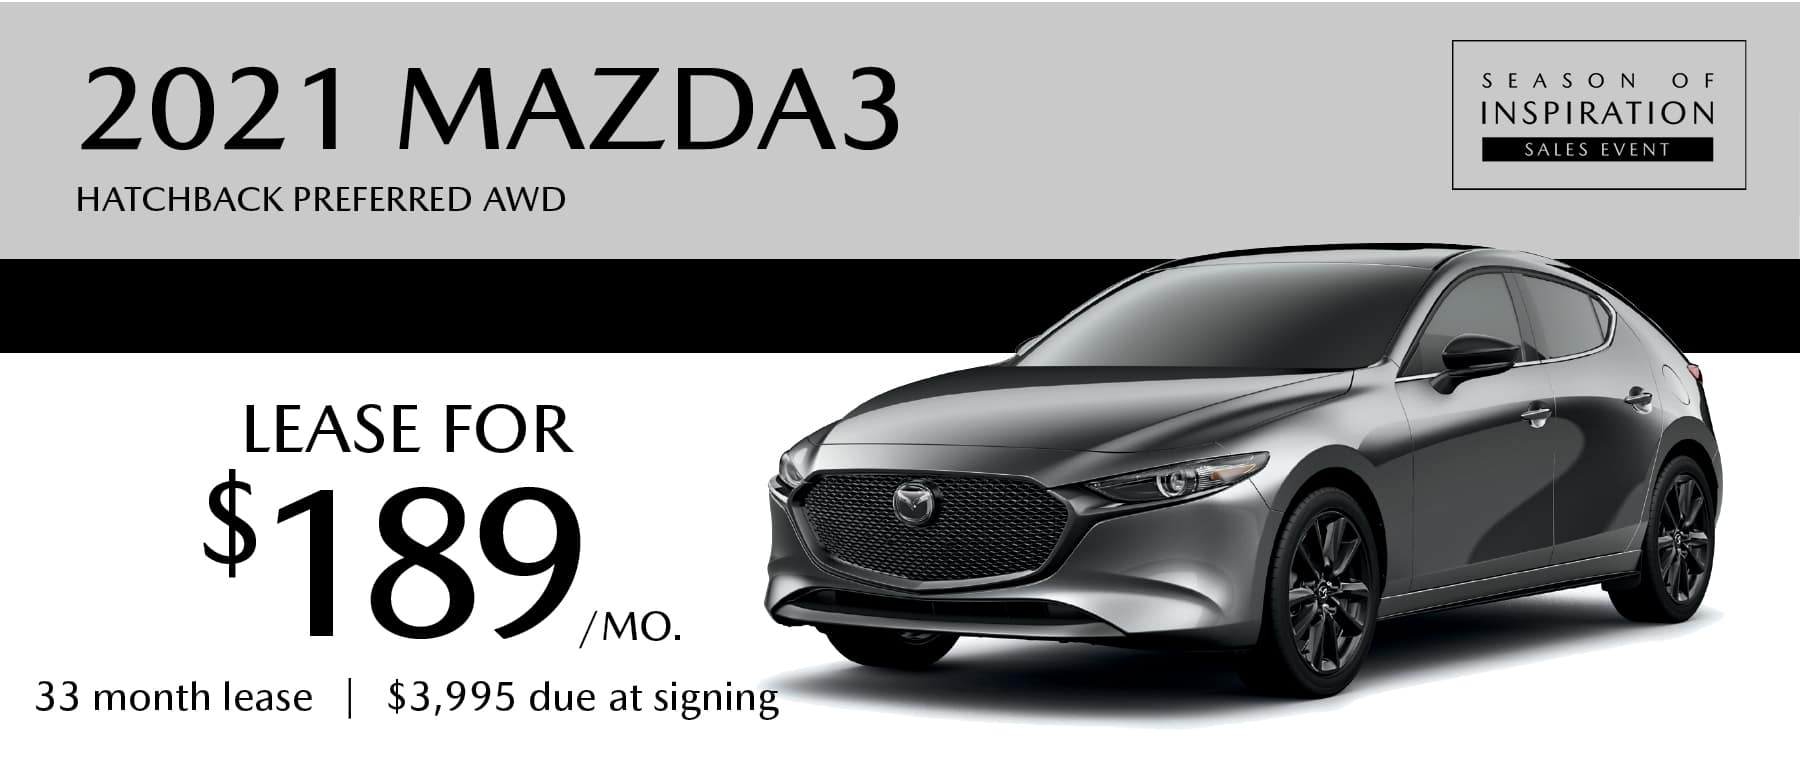 2021 Mazda3 Hatchback Preferred AWD Lease for $189 per month at Smail Mazda